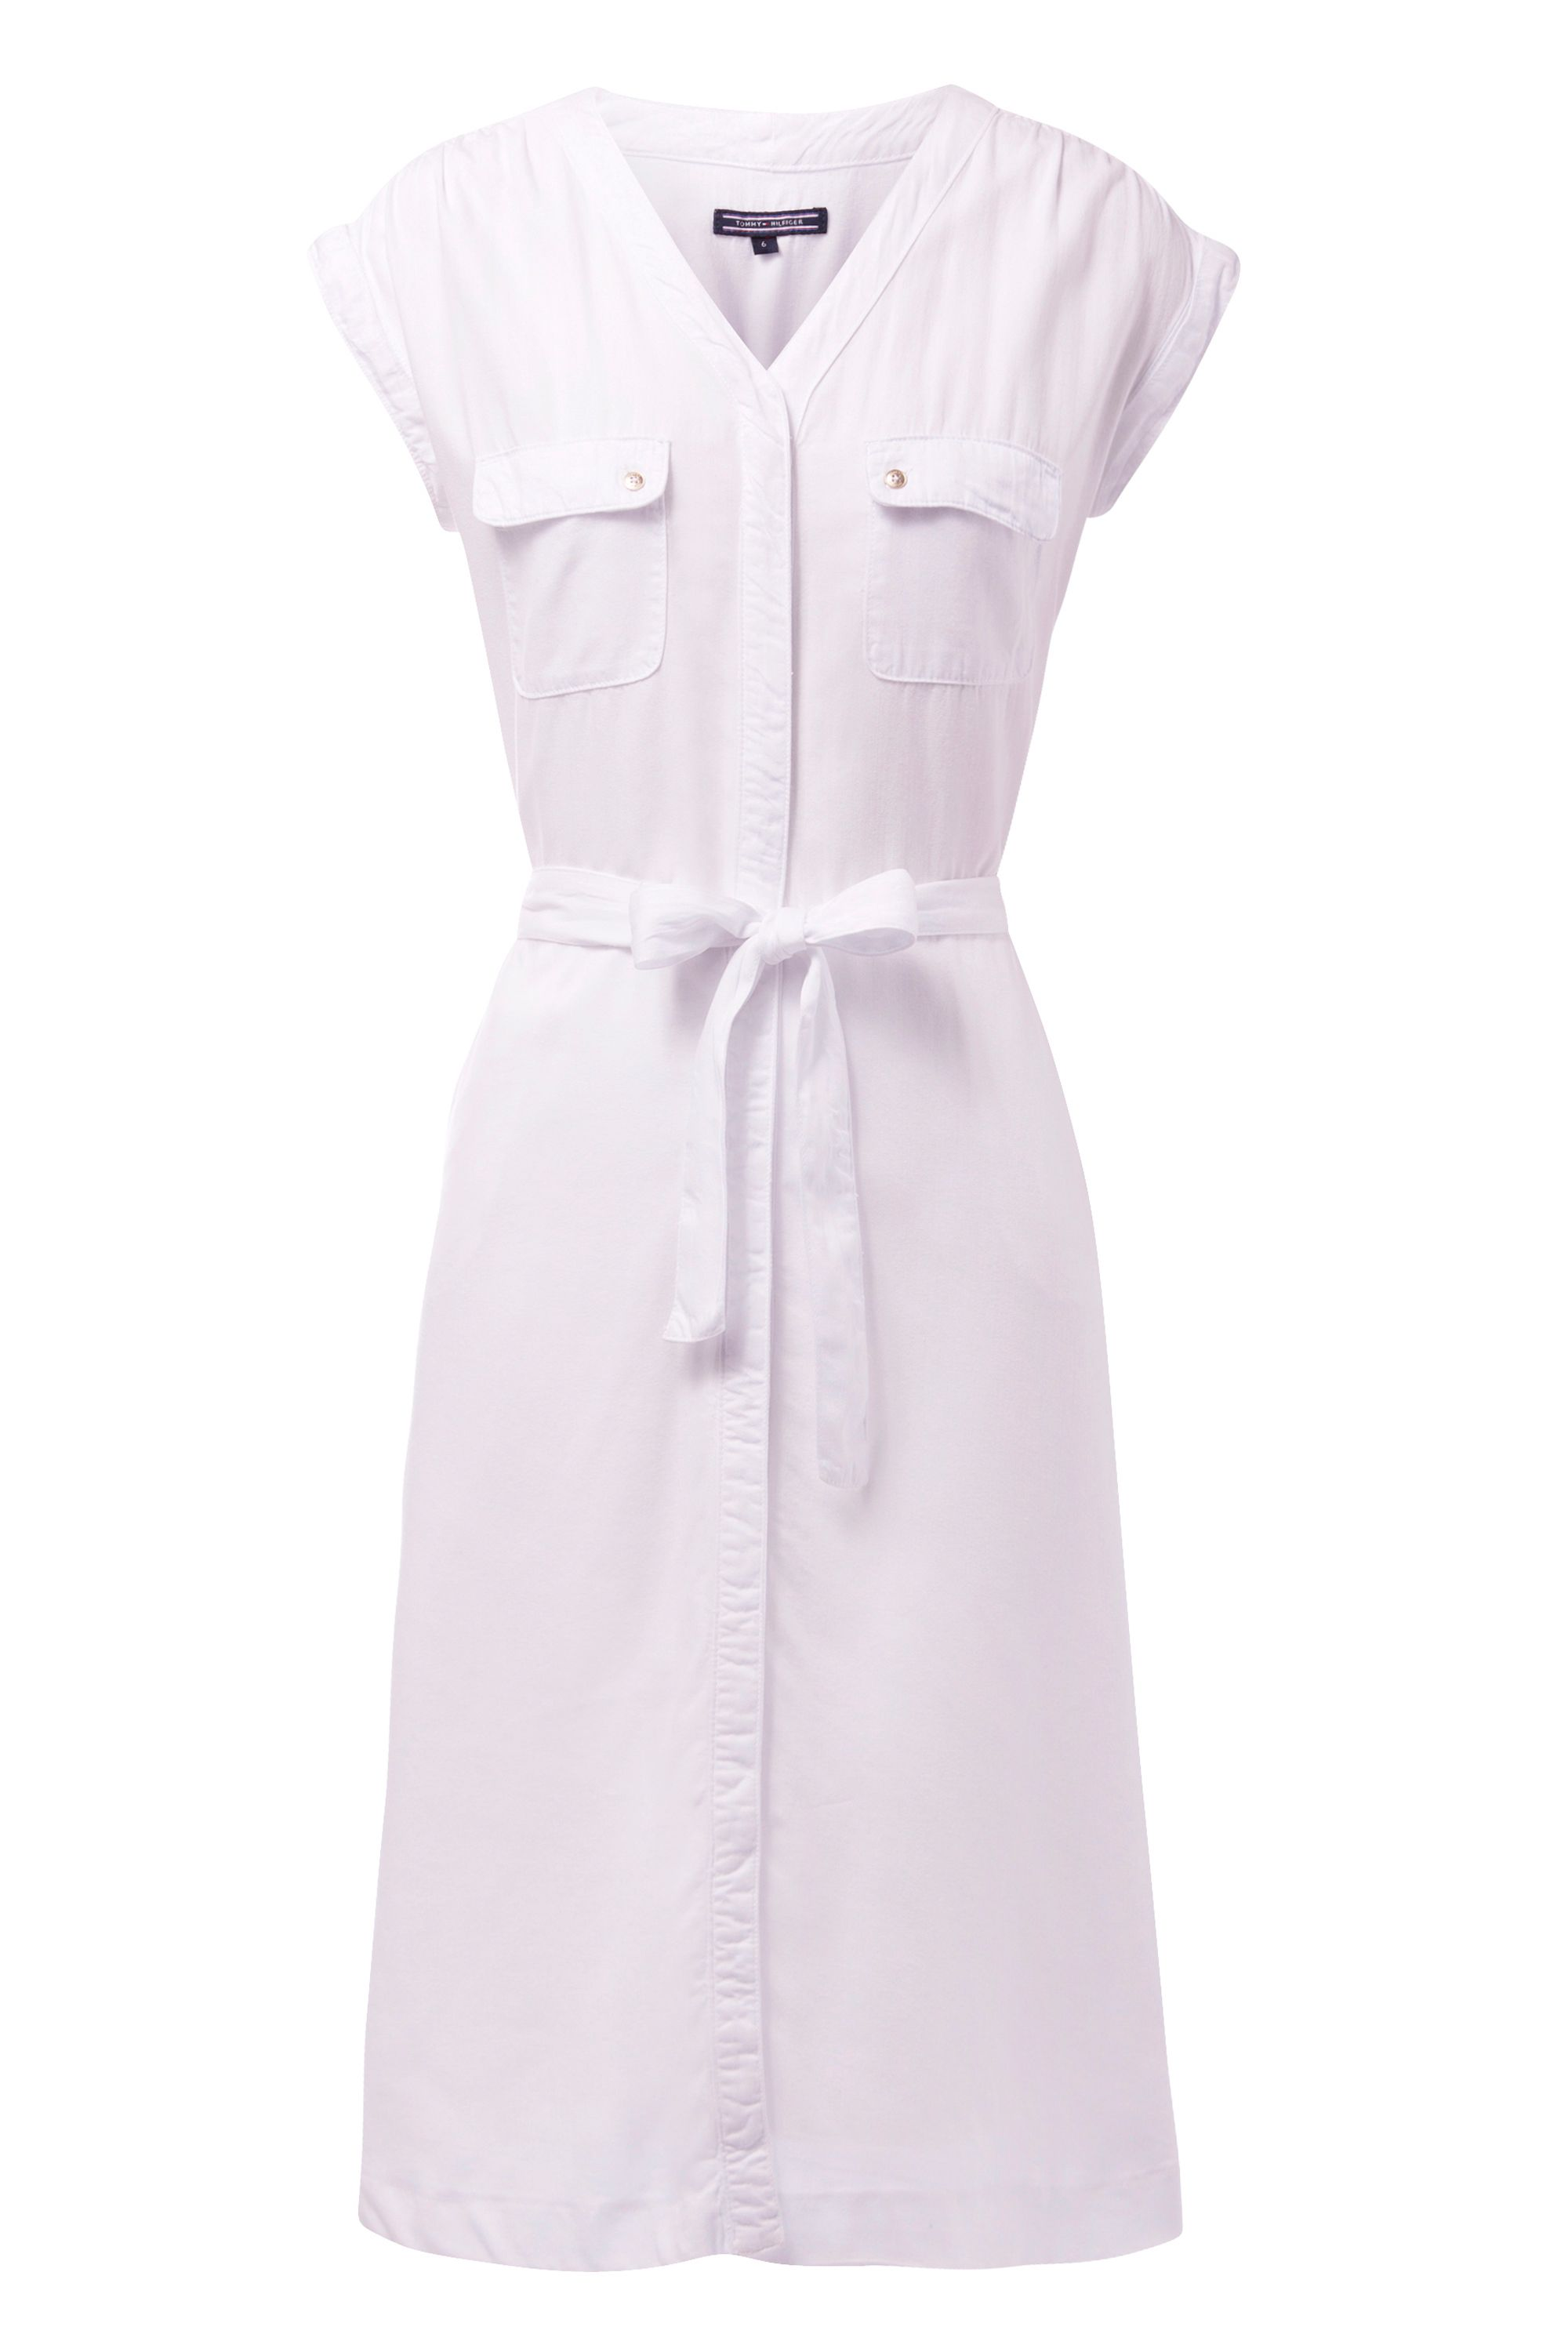 Tommy Hilfiger Tara Dress, White